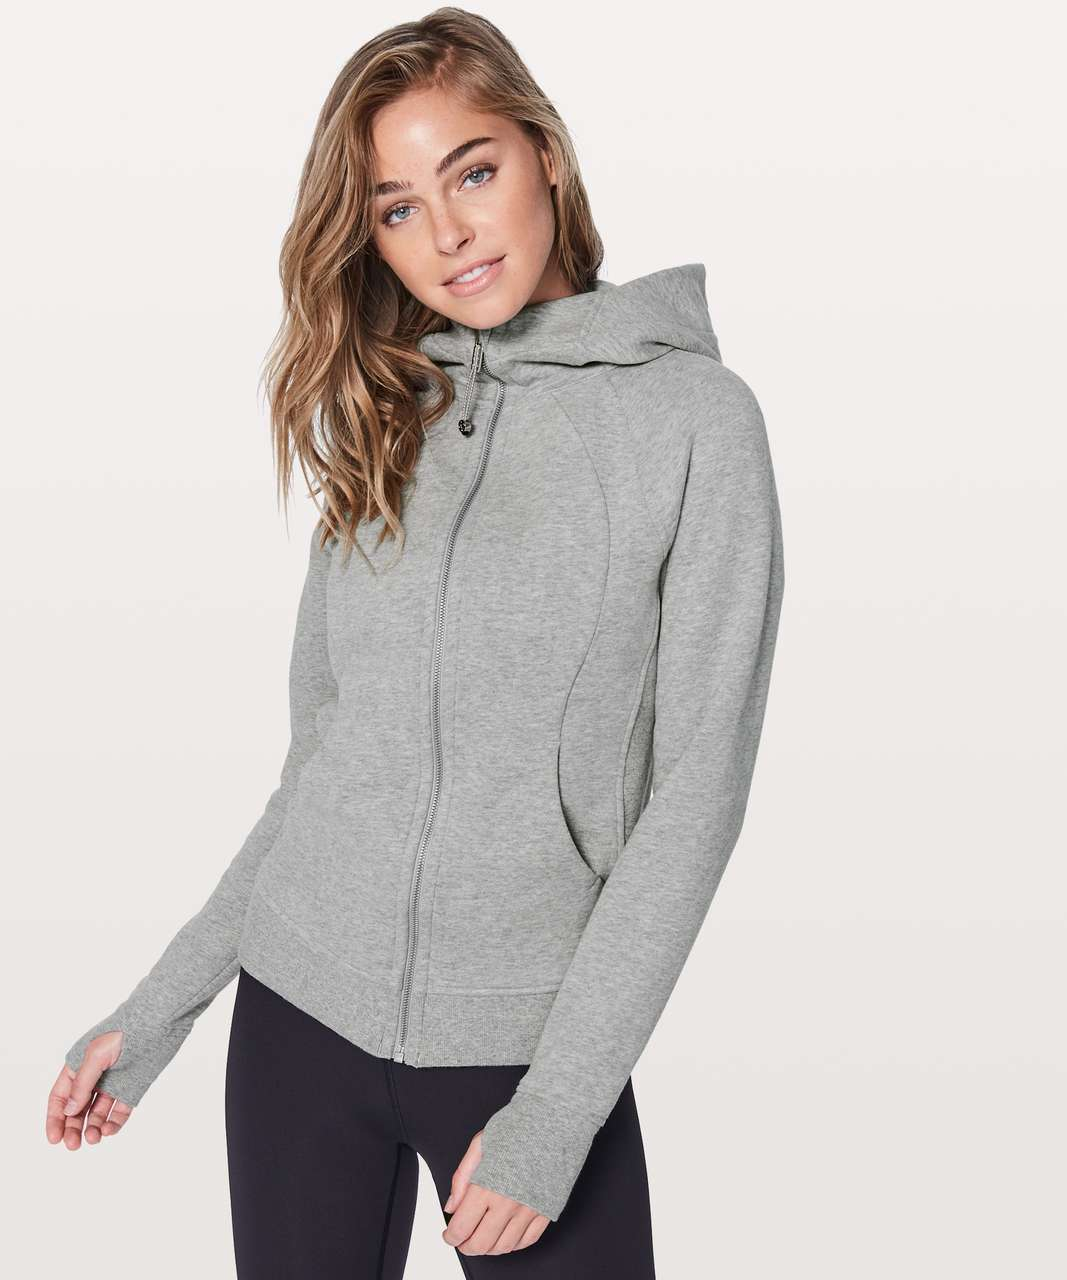 Lululemon Scuba Hoodie *Light Cotton Fleece - Heathered Core Light Grey / Silver Drop (First Release)